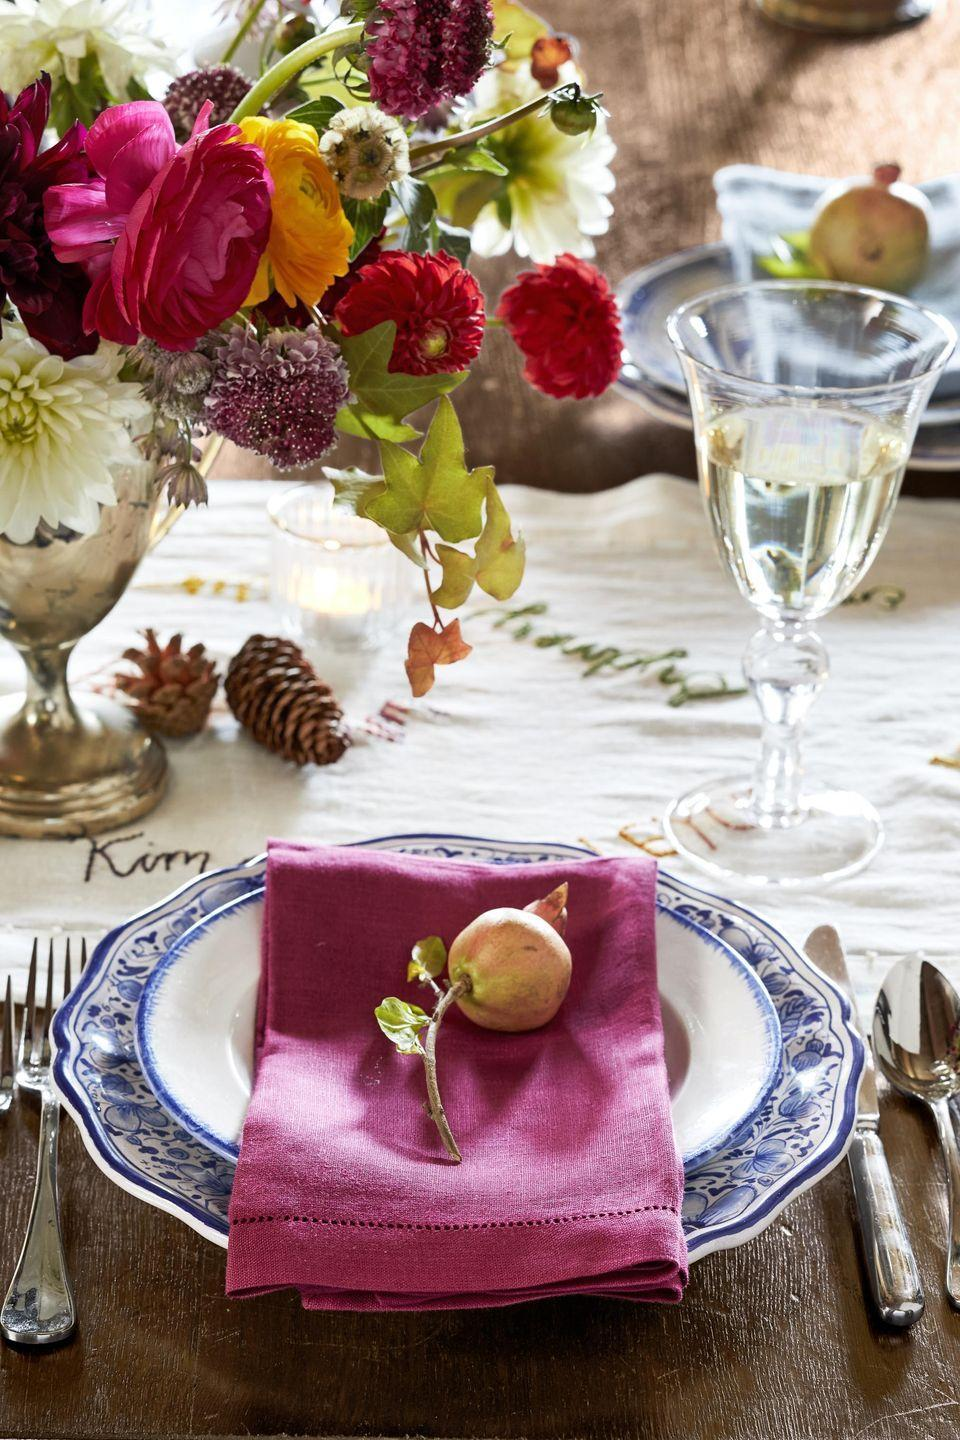 """<p>A plain cotton or linen table runner gets a personal touch when embroidered with the names of family and friends who have attended Thanksgivings past. Display and array of colorful flowers in a vintage trophy and add a scattering of small pine cones and tea lights to complete the scene.<br></p><p><a class=""""link rapid-noclick-resp"""" href=""""https://www.amazon.com/Solino-Home-Hemstitch-Linen-Runner/dp/B07GS68V2Q/ref=sr_1_1_sspa?tag=syn-yahoo-20&ascsubtag=%5Bartid%7C10050.g.2130%5Bsrc%7Cyahoo-us"""" rel=""""nofollow noopener"""" target=""""_blank"""" data-ylk=""""slk:SHOP LINEN TABLE RUNNERS"""">SHOP LINEN TABLE RUNNERS</a><br></p>"""